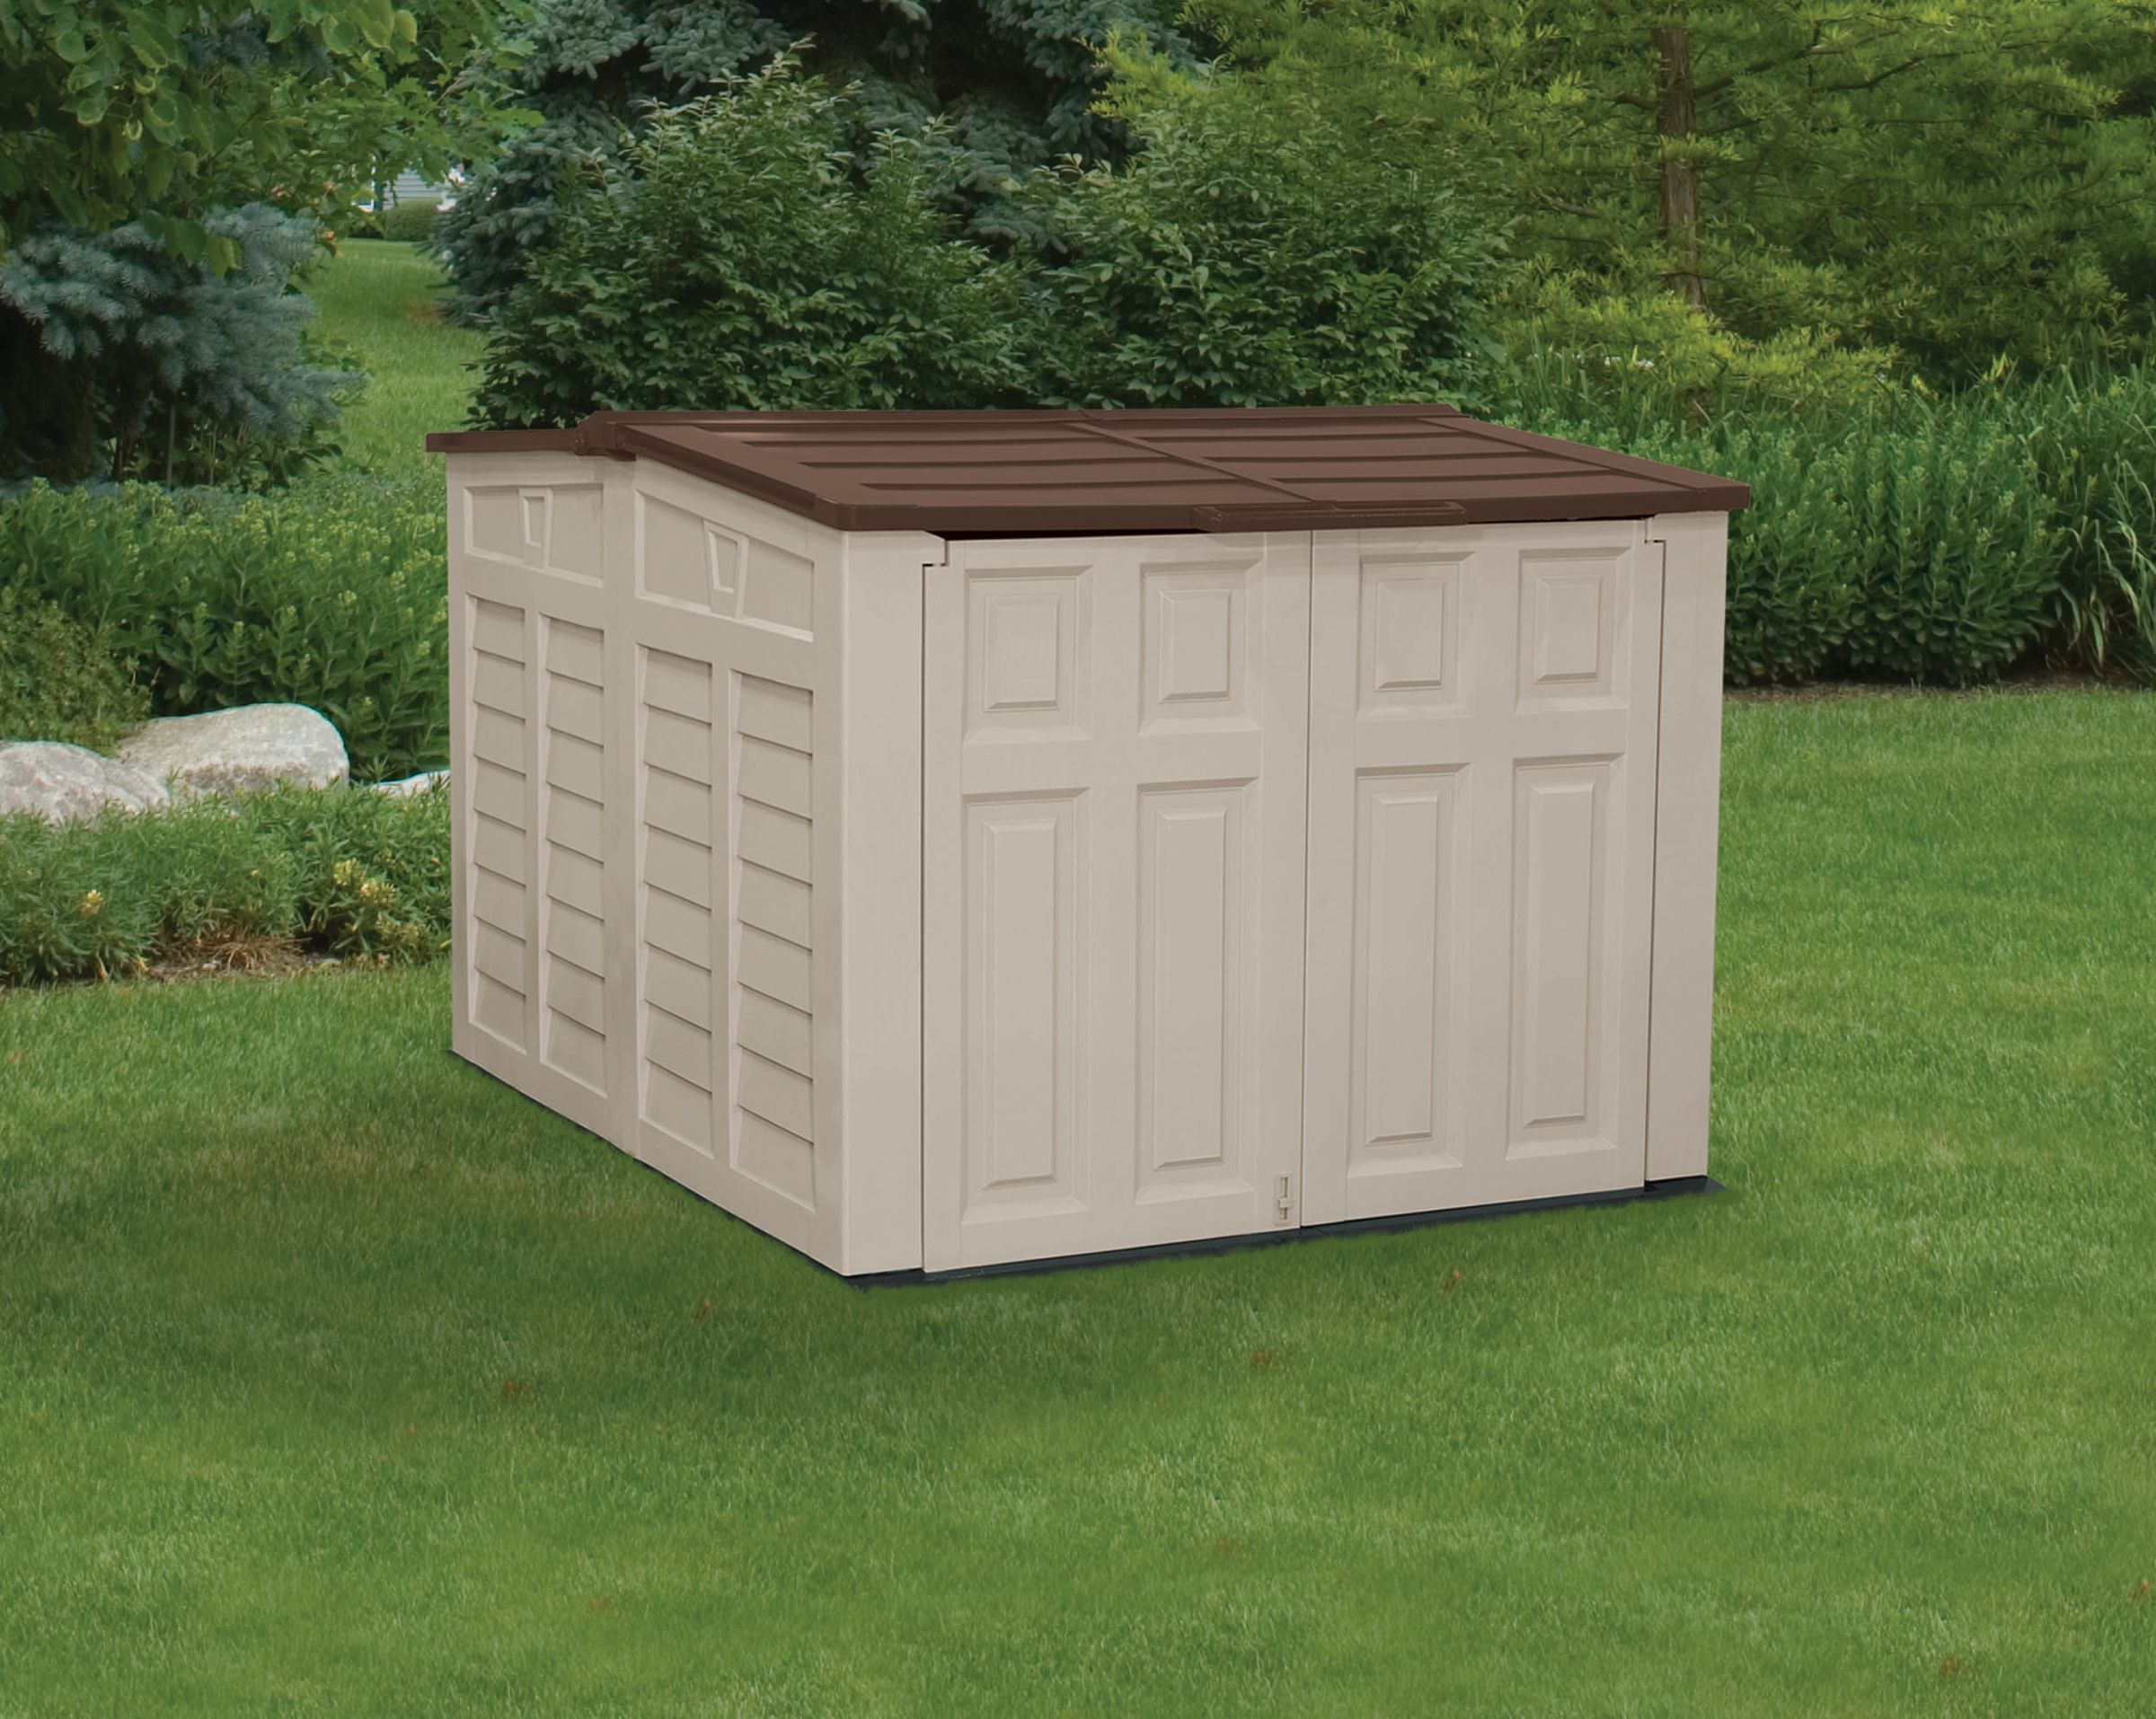 Suncast Low Profile Storage Shed